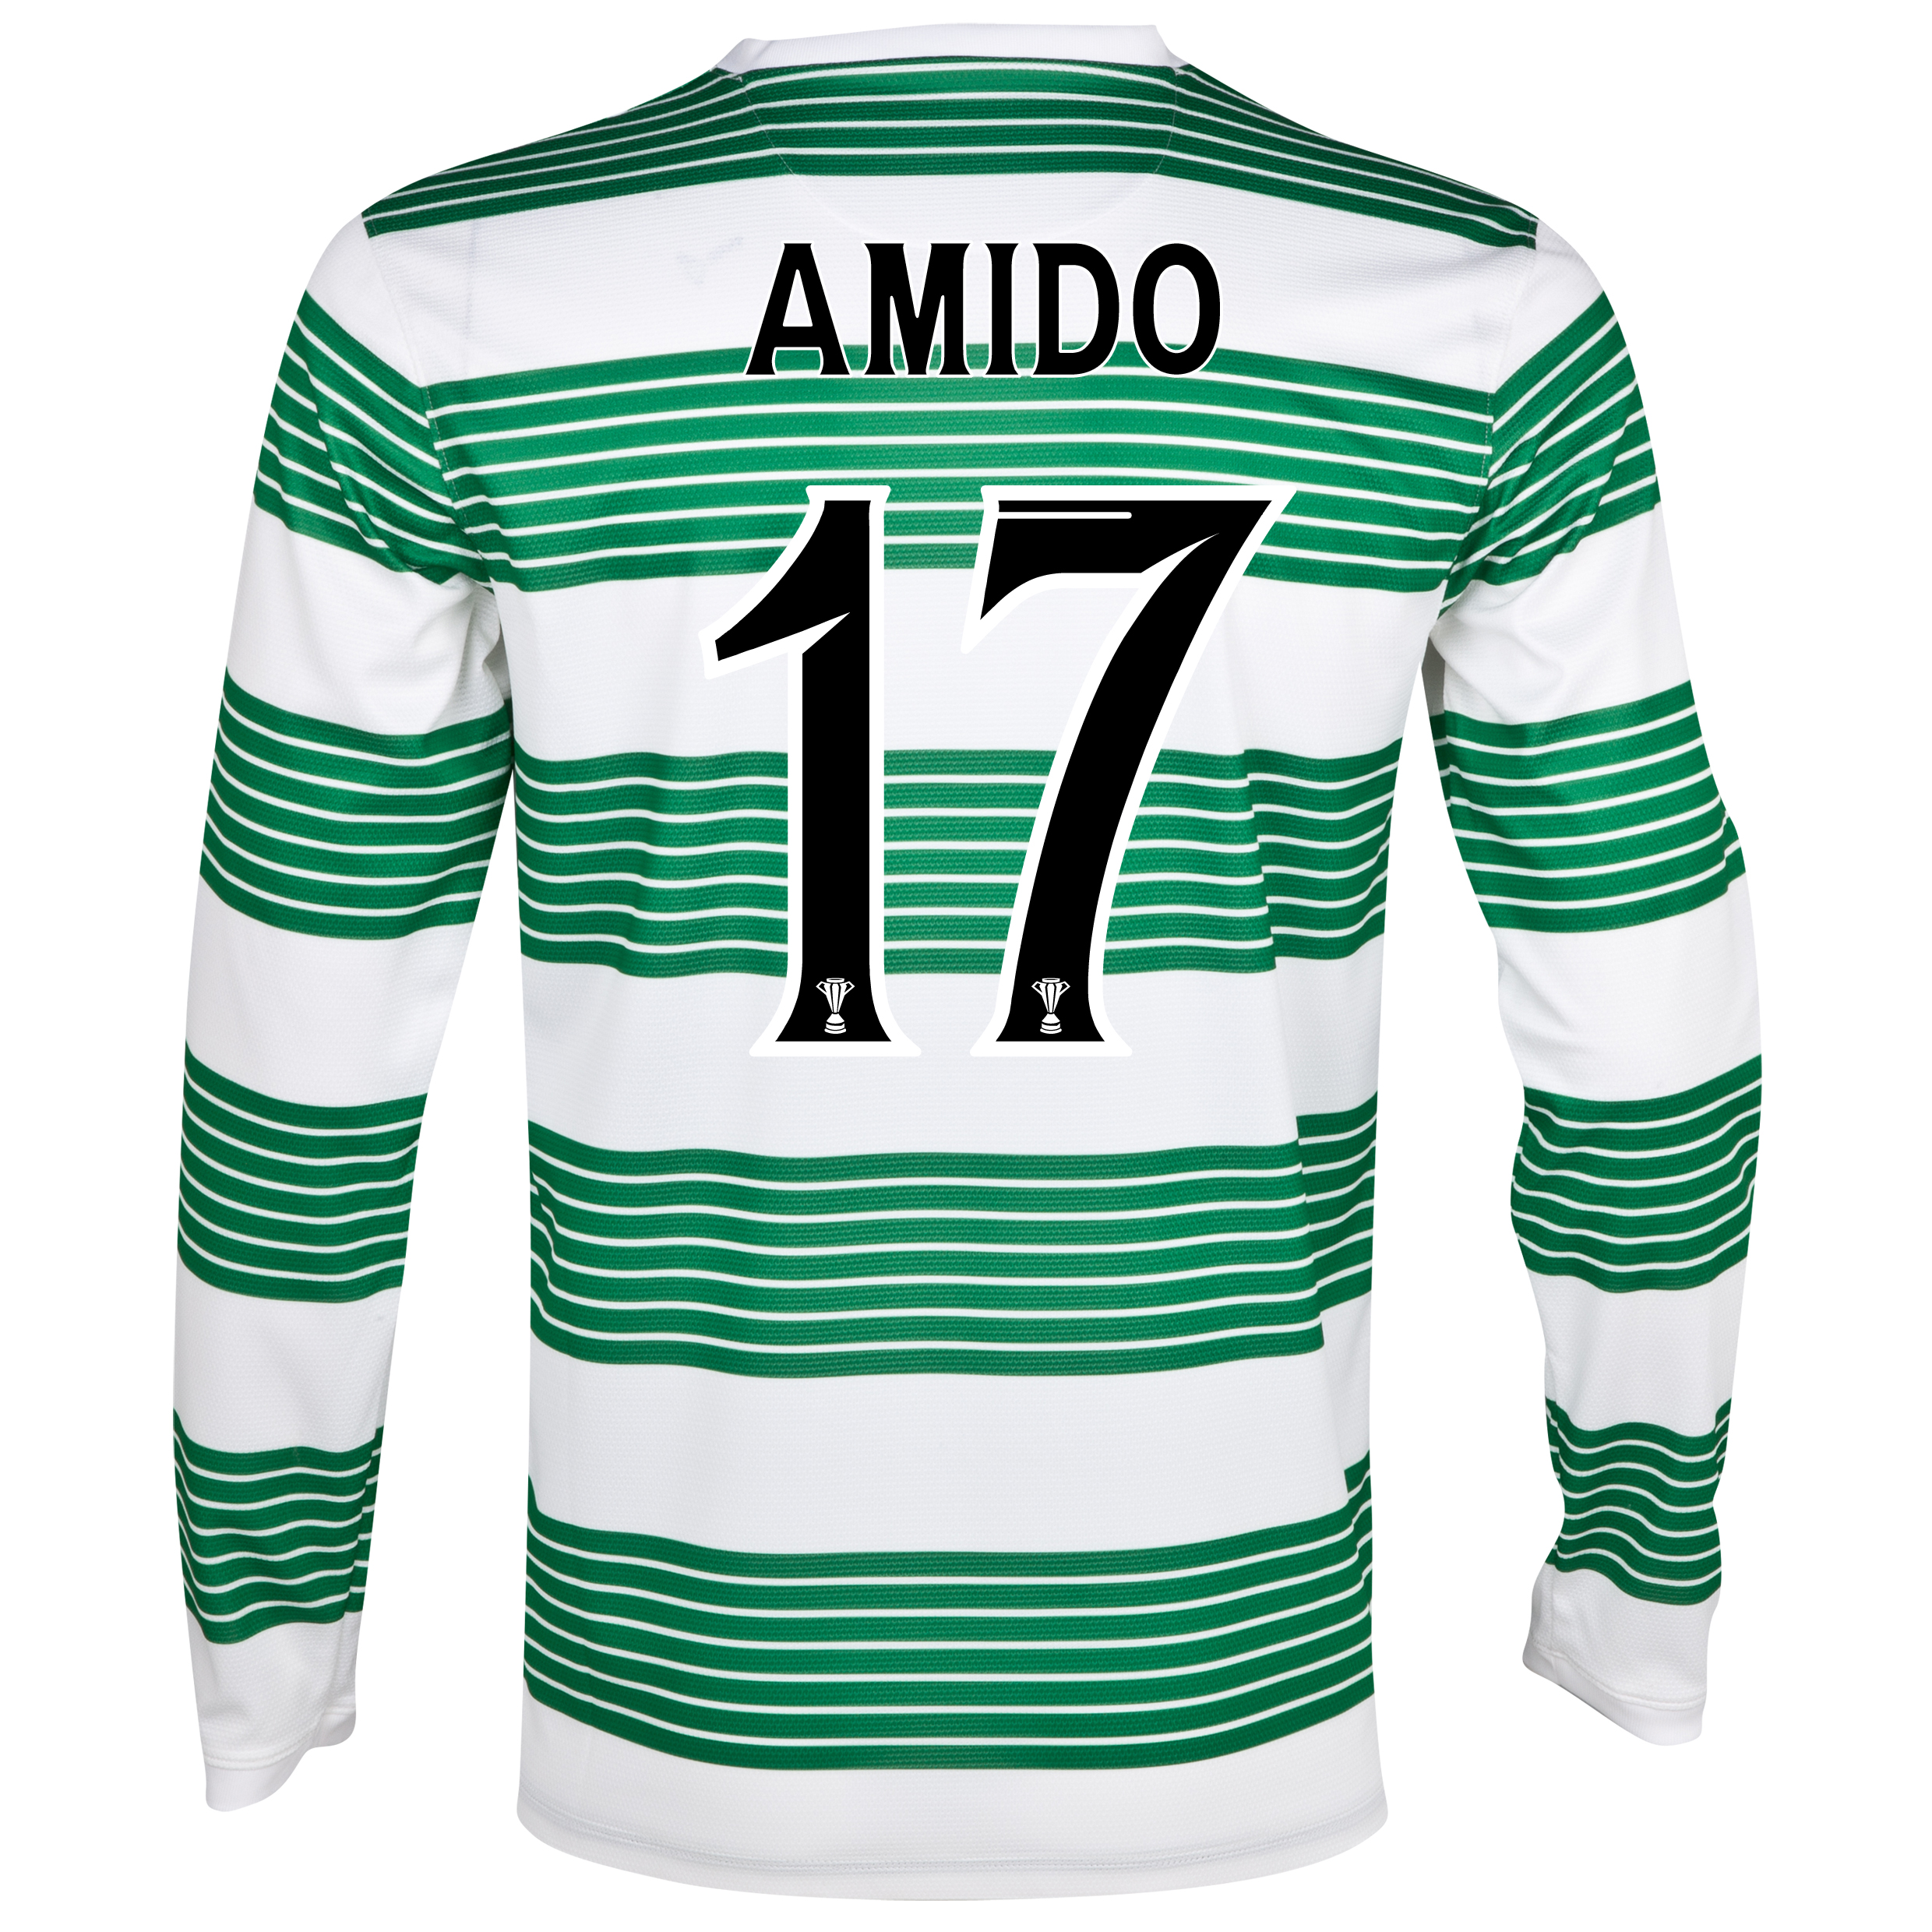 Celtic Home Shirt 2013/14 - L/S- Unsponsored with Amido 17 printing